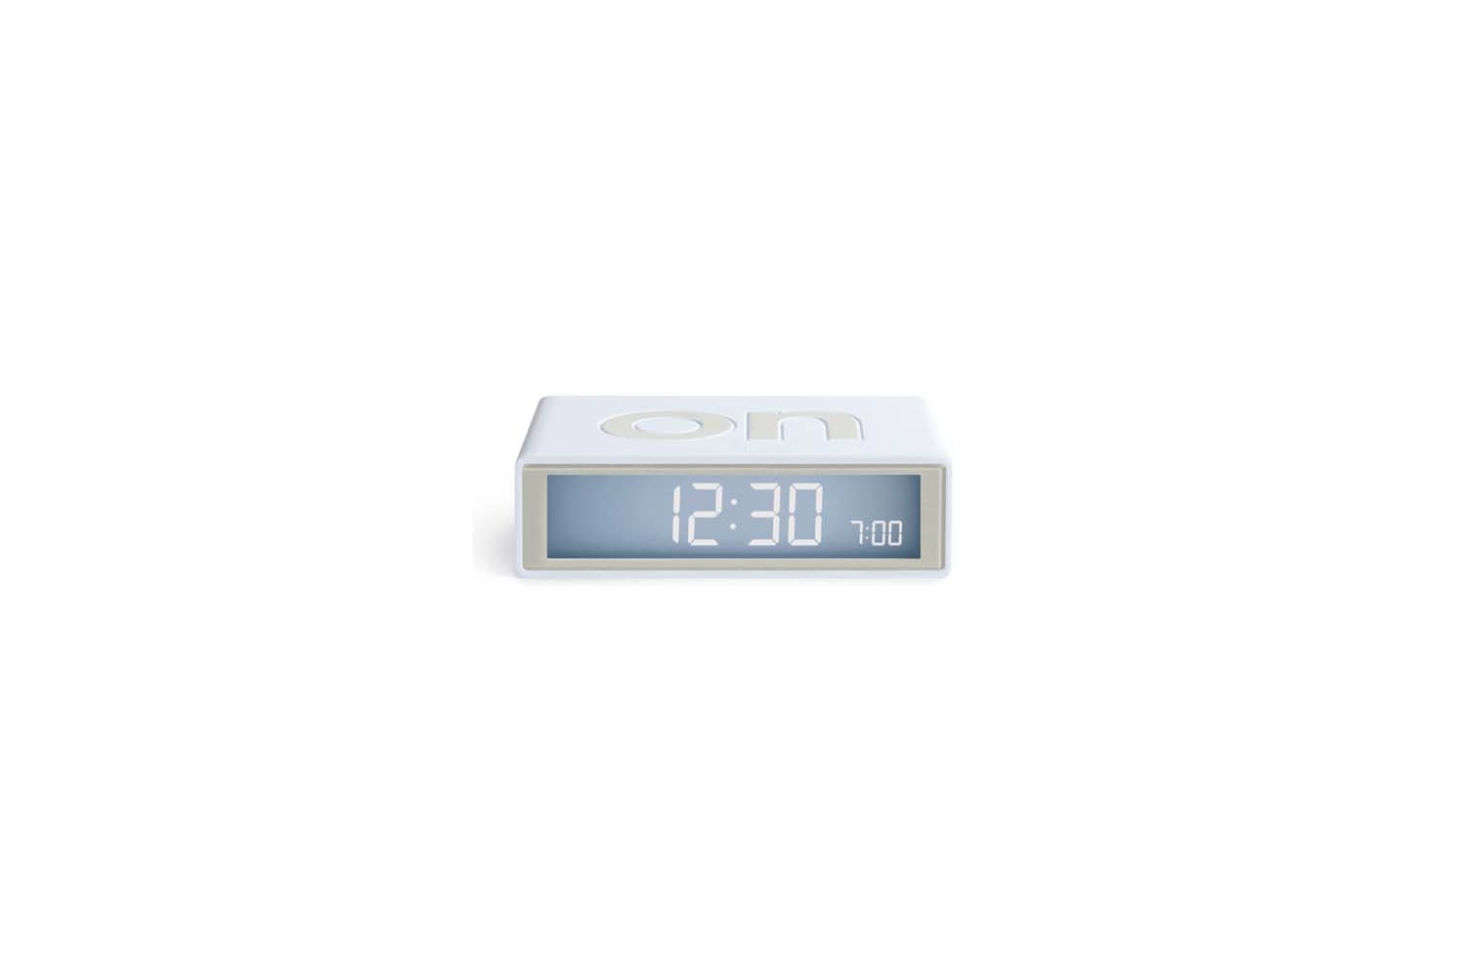 One of our editors swears by this simple alarm clock: the Lexon Flip Travel Alarm Clock designed by Adrian & Jeremy Wright, is turned on or off depending on which side you flip it to. Finished in silicone rubber and available in seven colors; $30 at the MoMA Design Store.